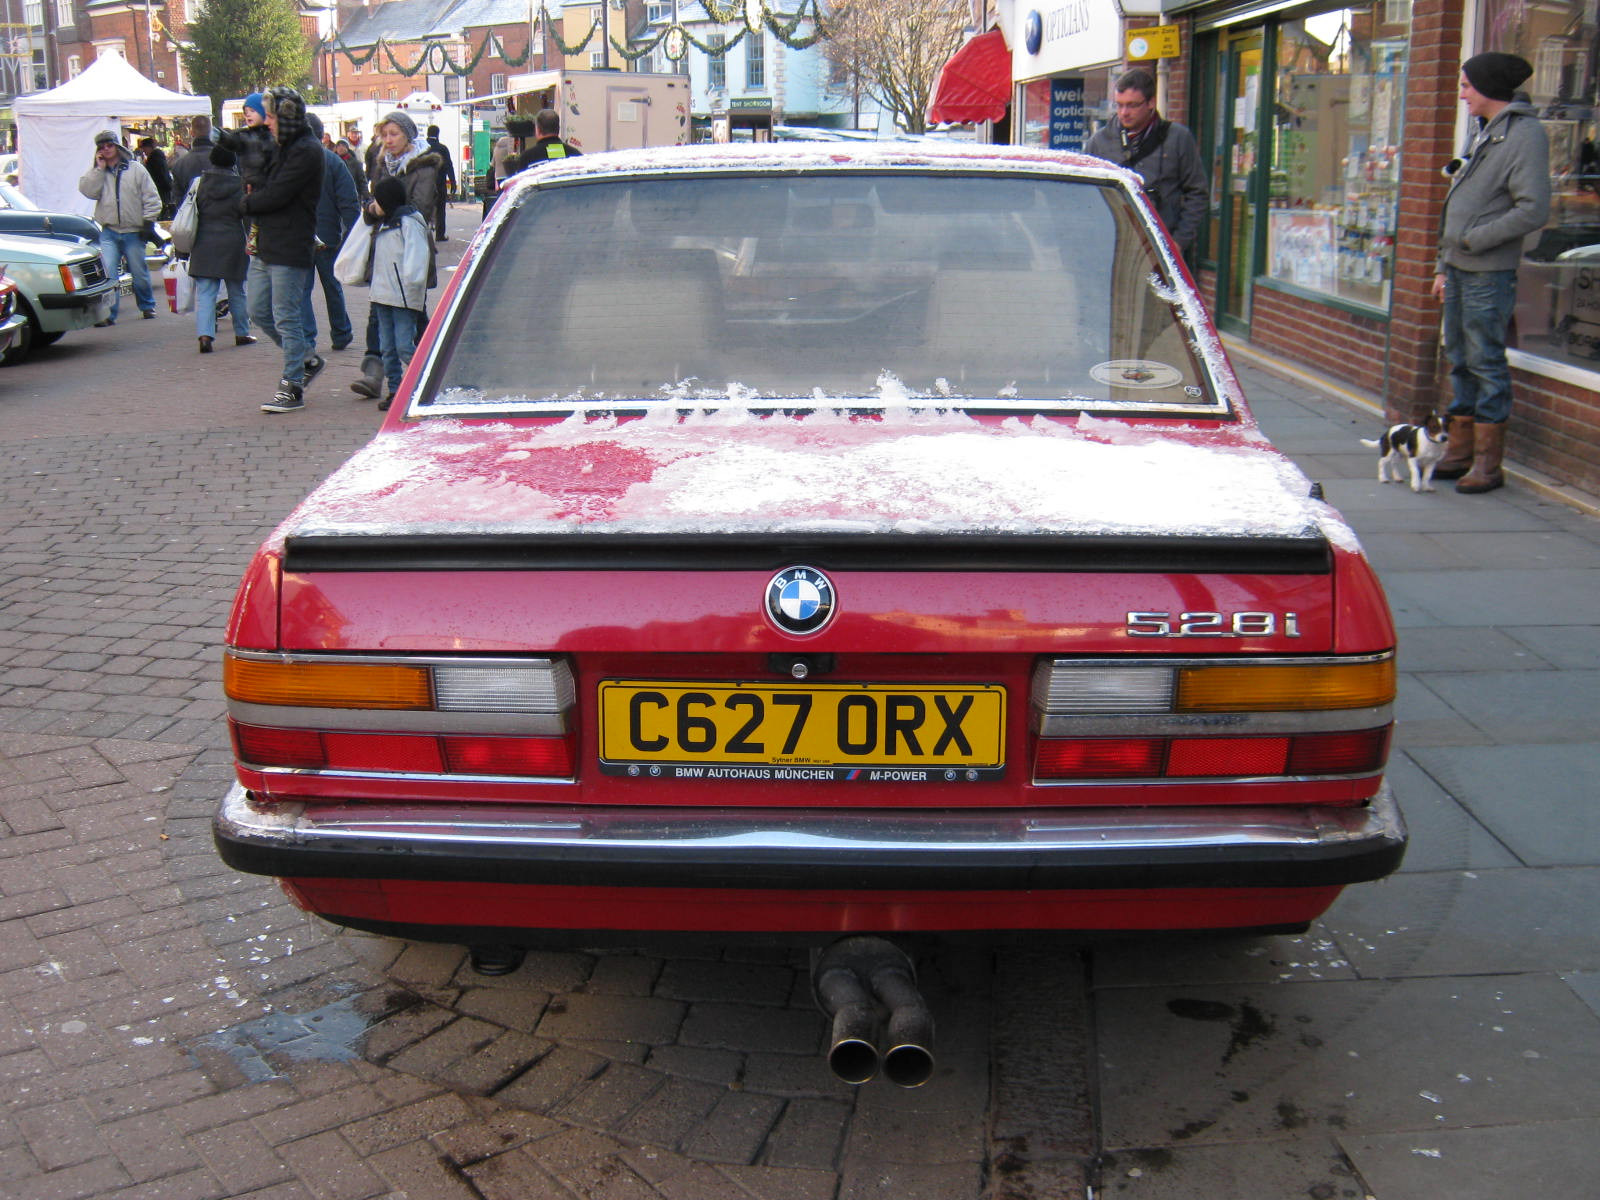 NOVEMBER 1985 BMW 528 INJECTION 2788cc C627ORX | Flickr - Photo ...